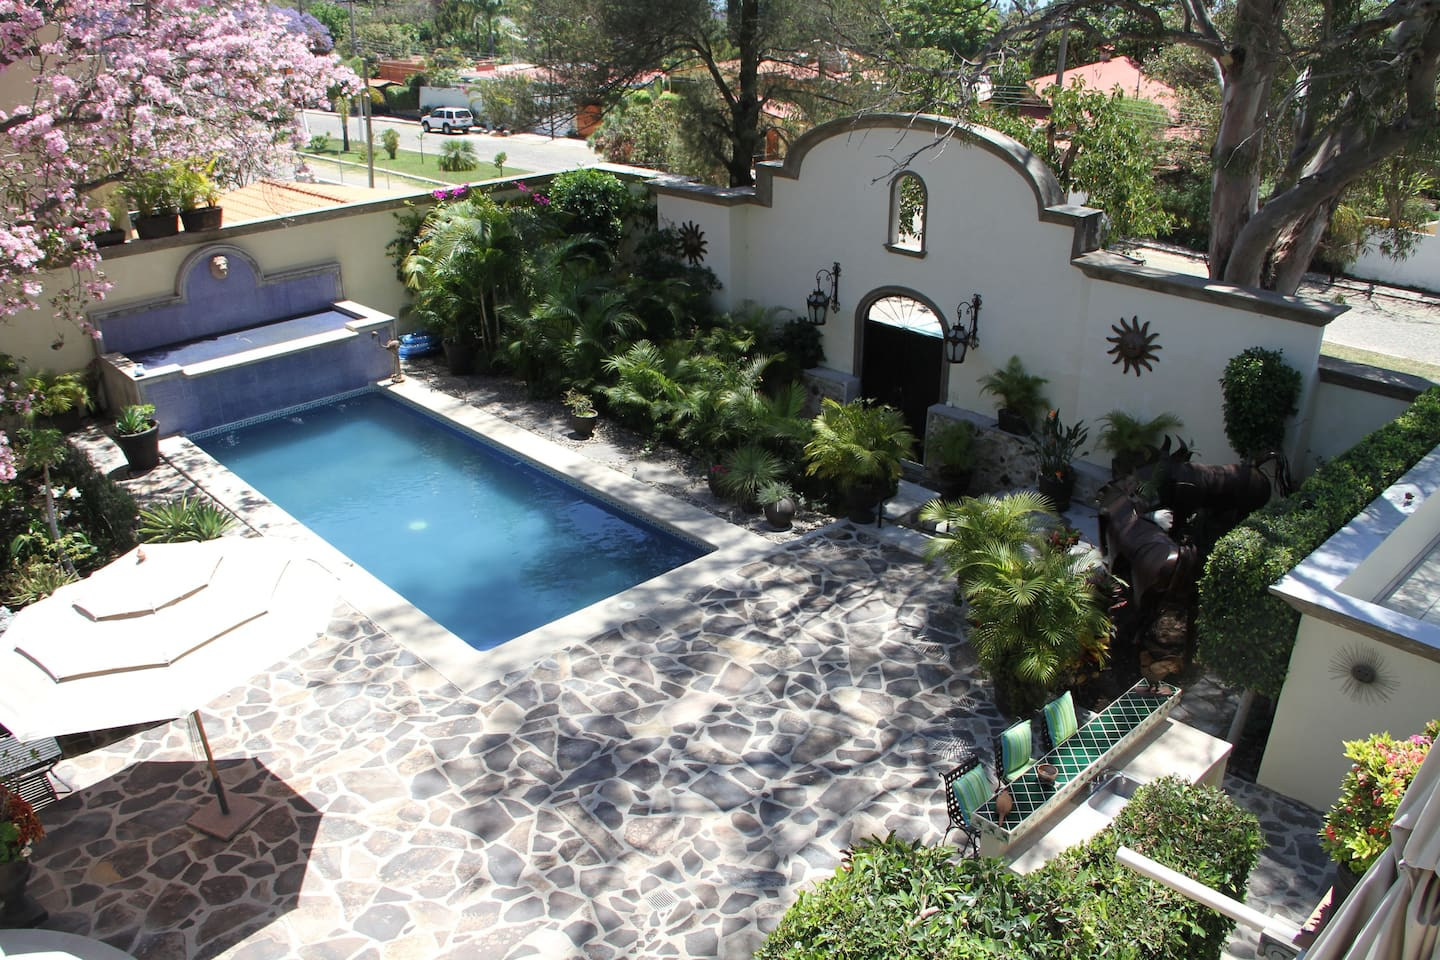 Overview of the pool area